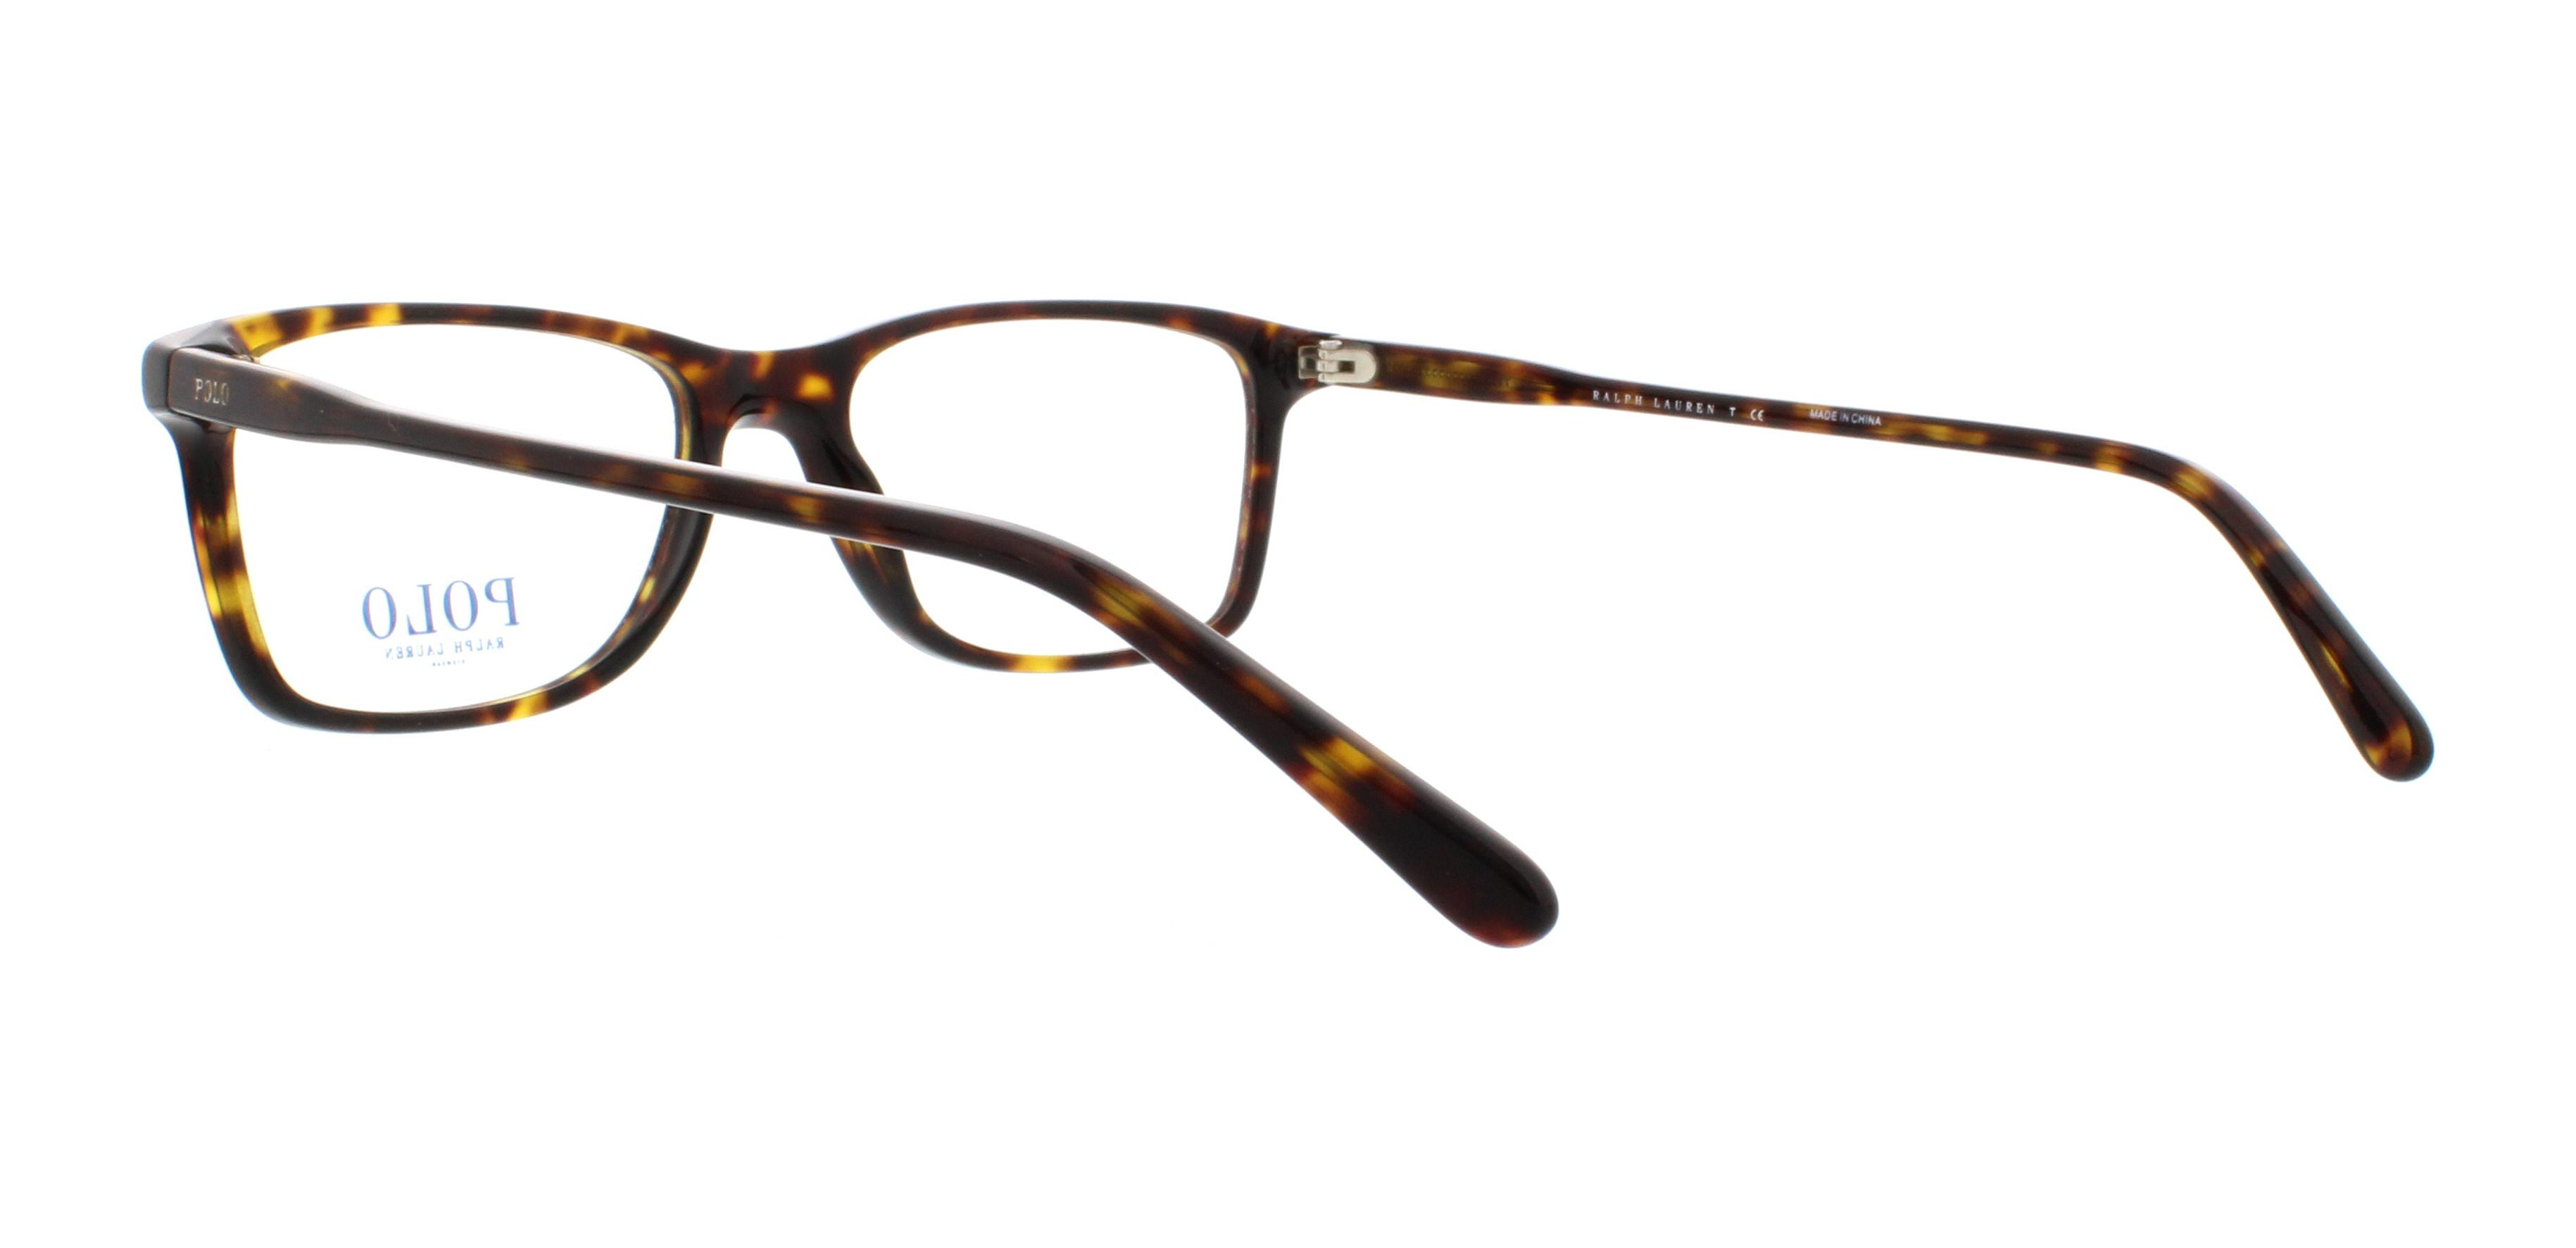 POLO Eyeglasses PH2155 5003 Shiny Dark Havana 54MM | eBay